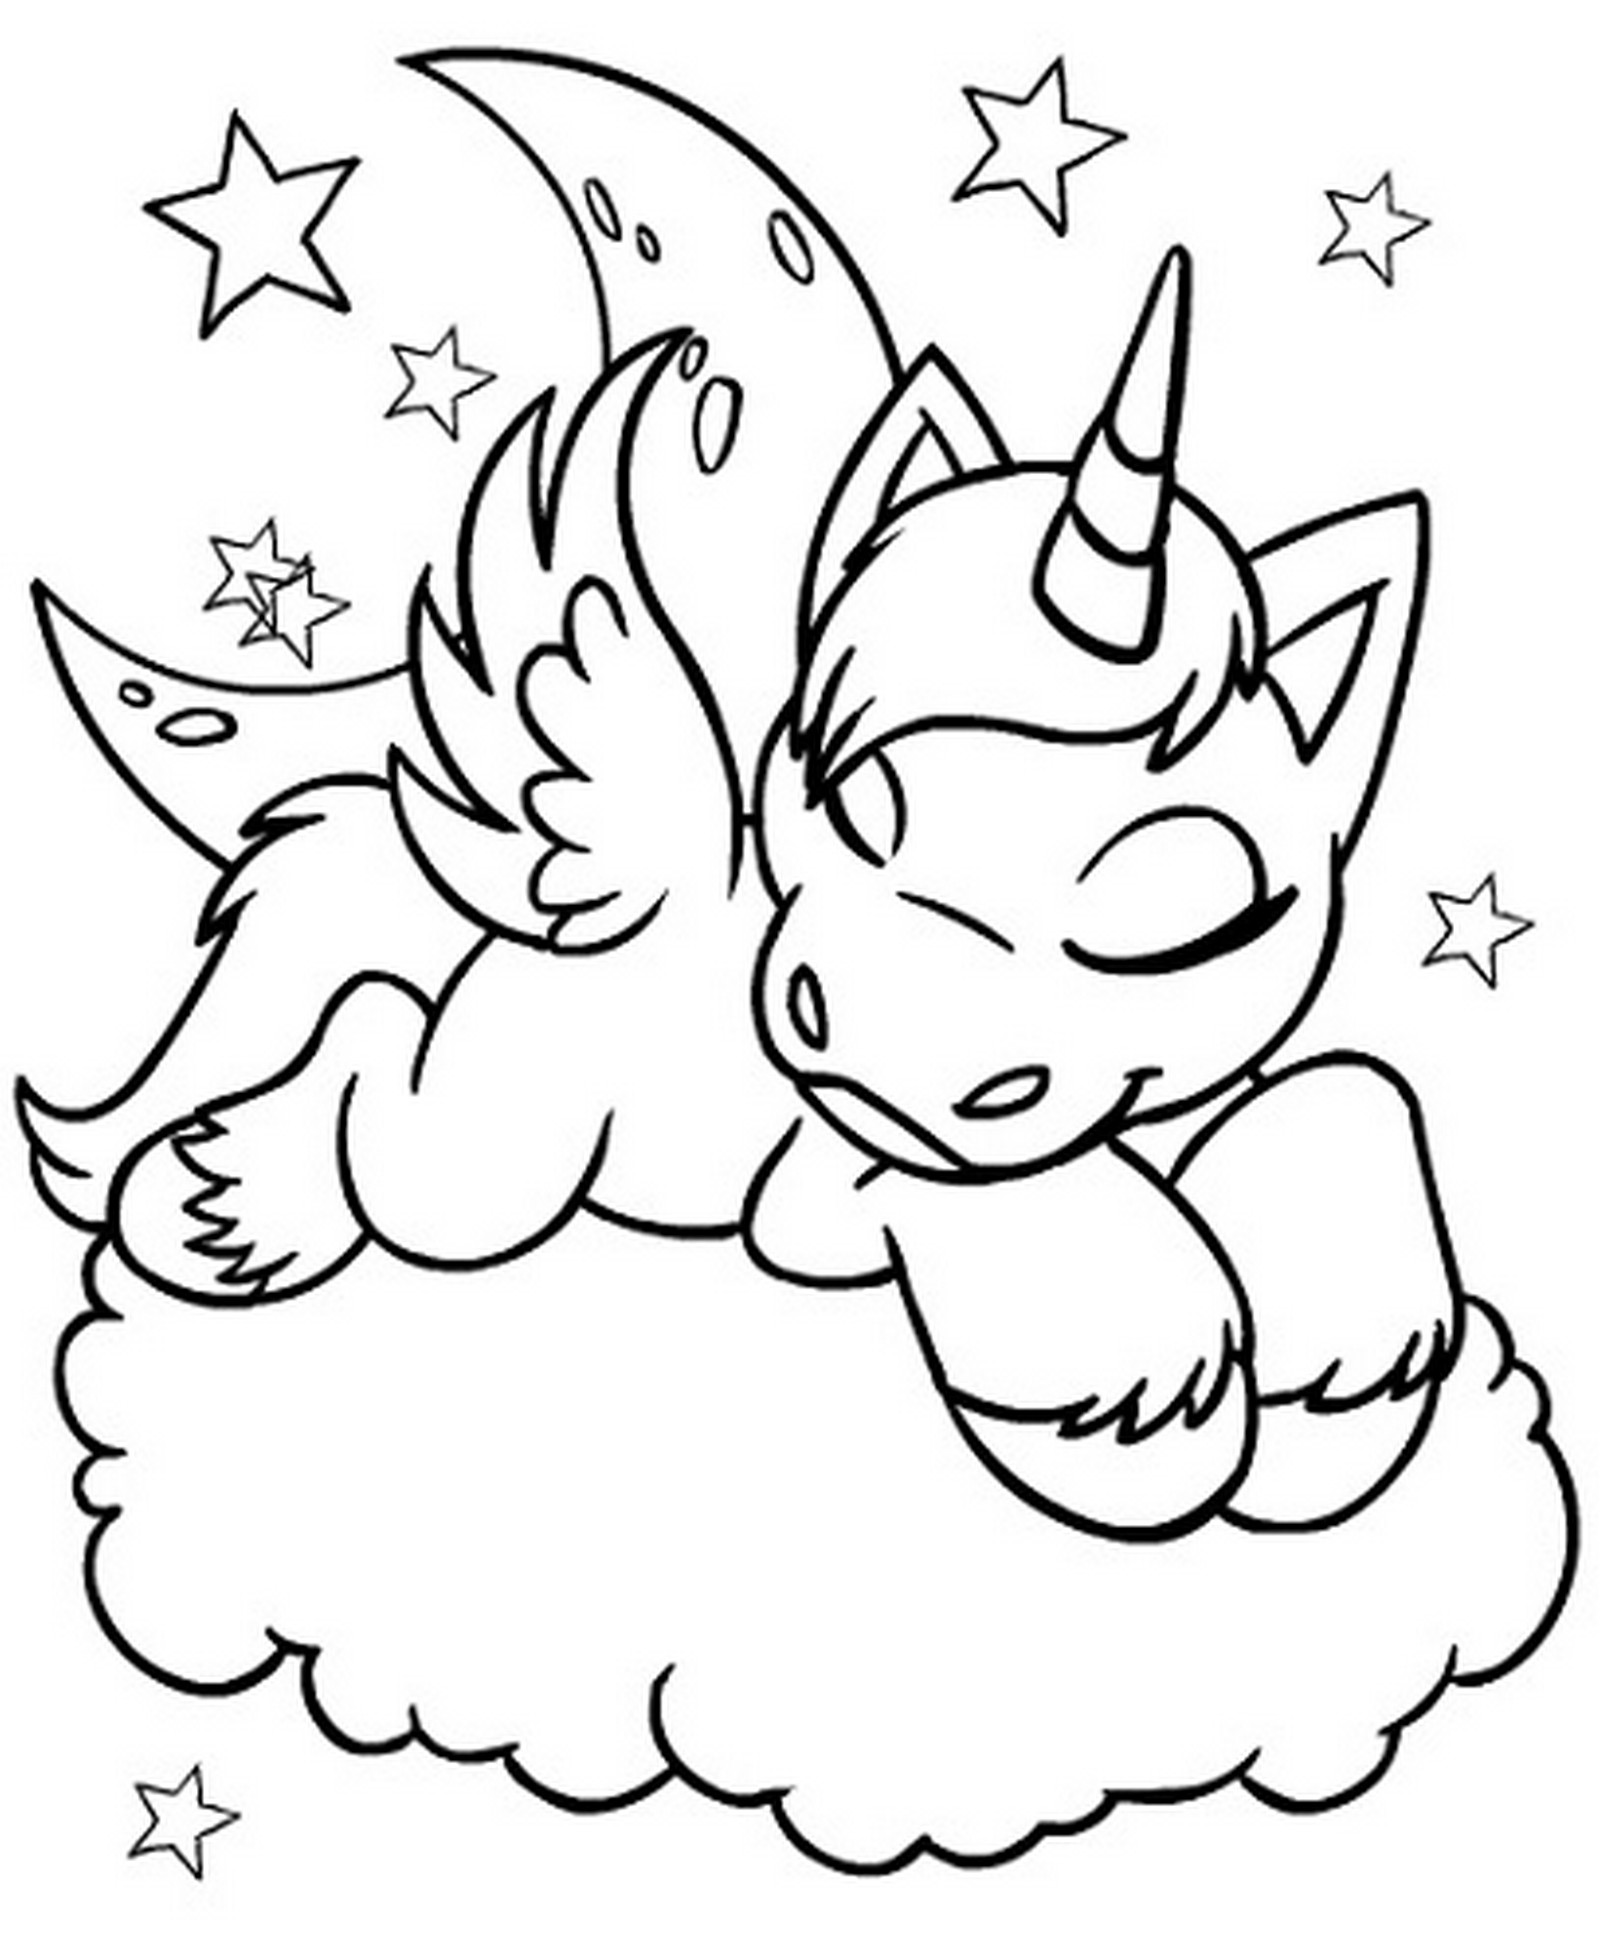 coloring for unicorn book drawing outline free download on clipartmag for unicorn coloring